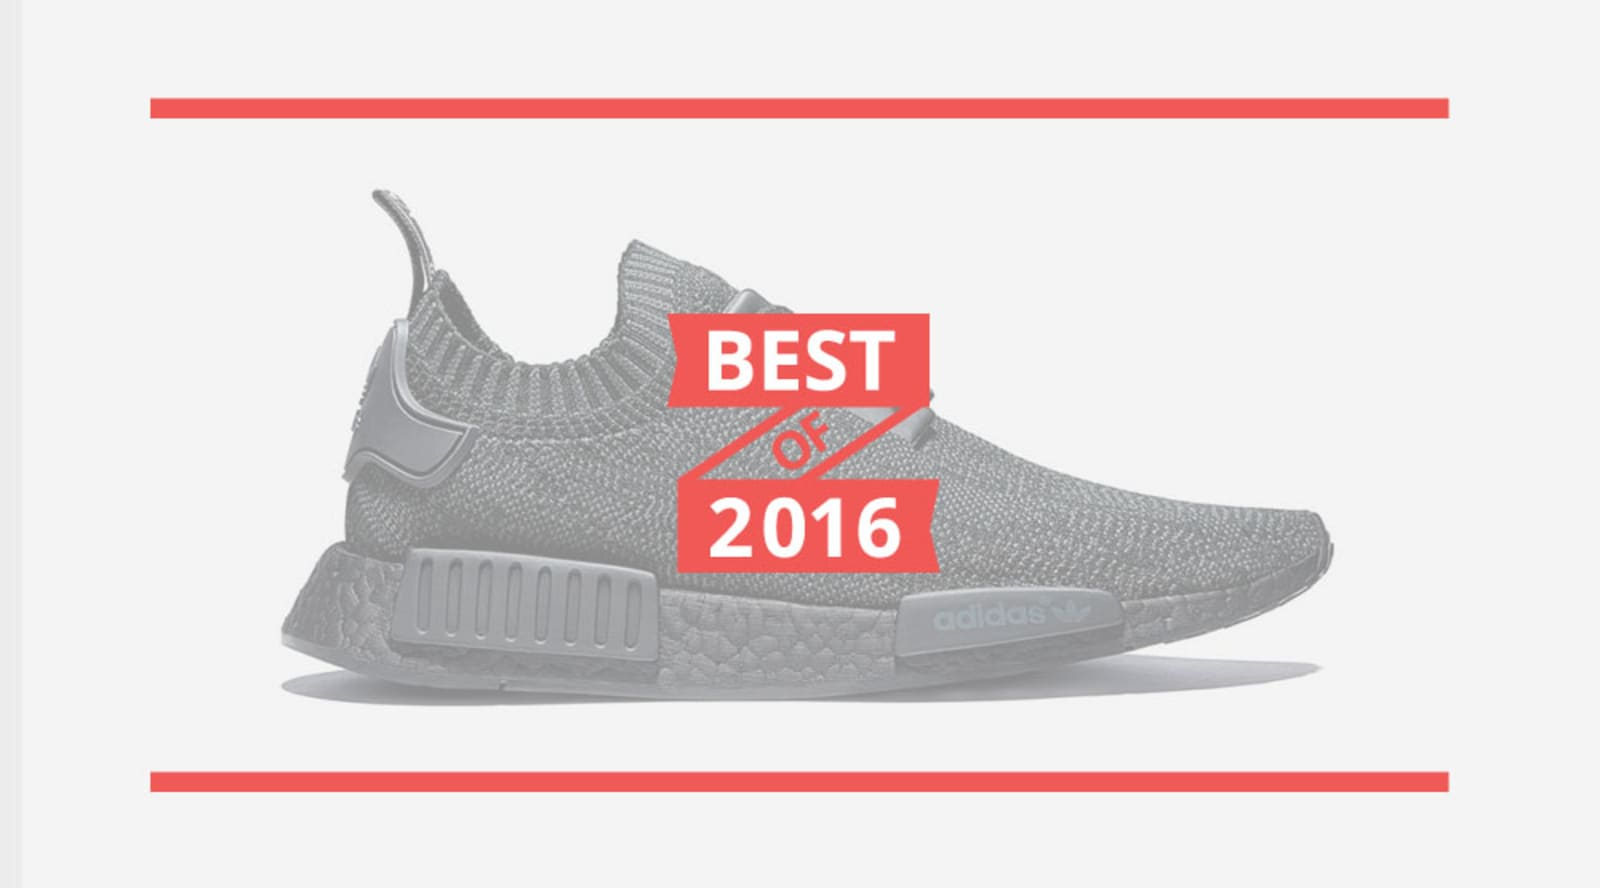 9baf35d8 As the year 2016 comes to a close we're reaching out to members of the  community that we respect to get their take on the year in sneakers.